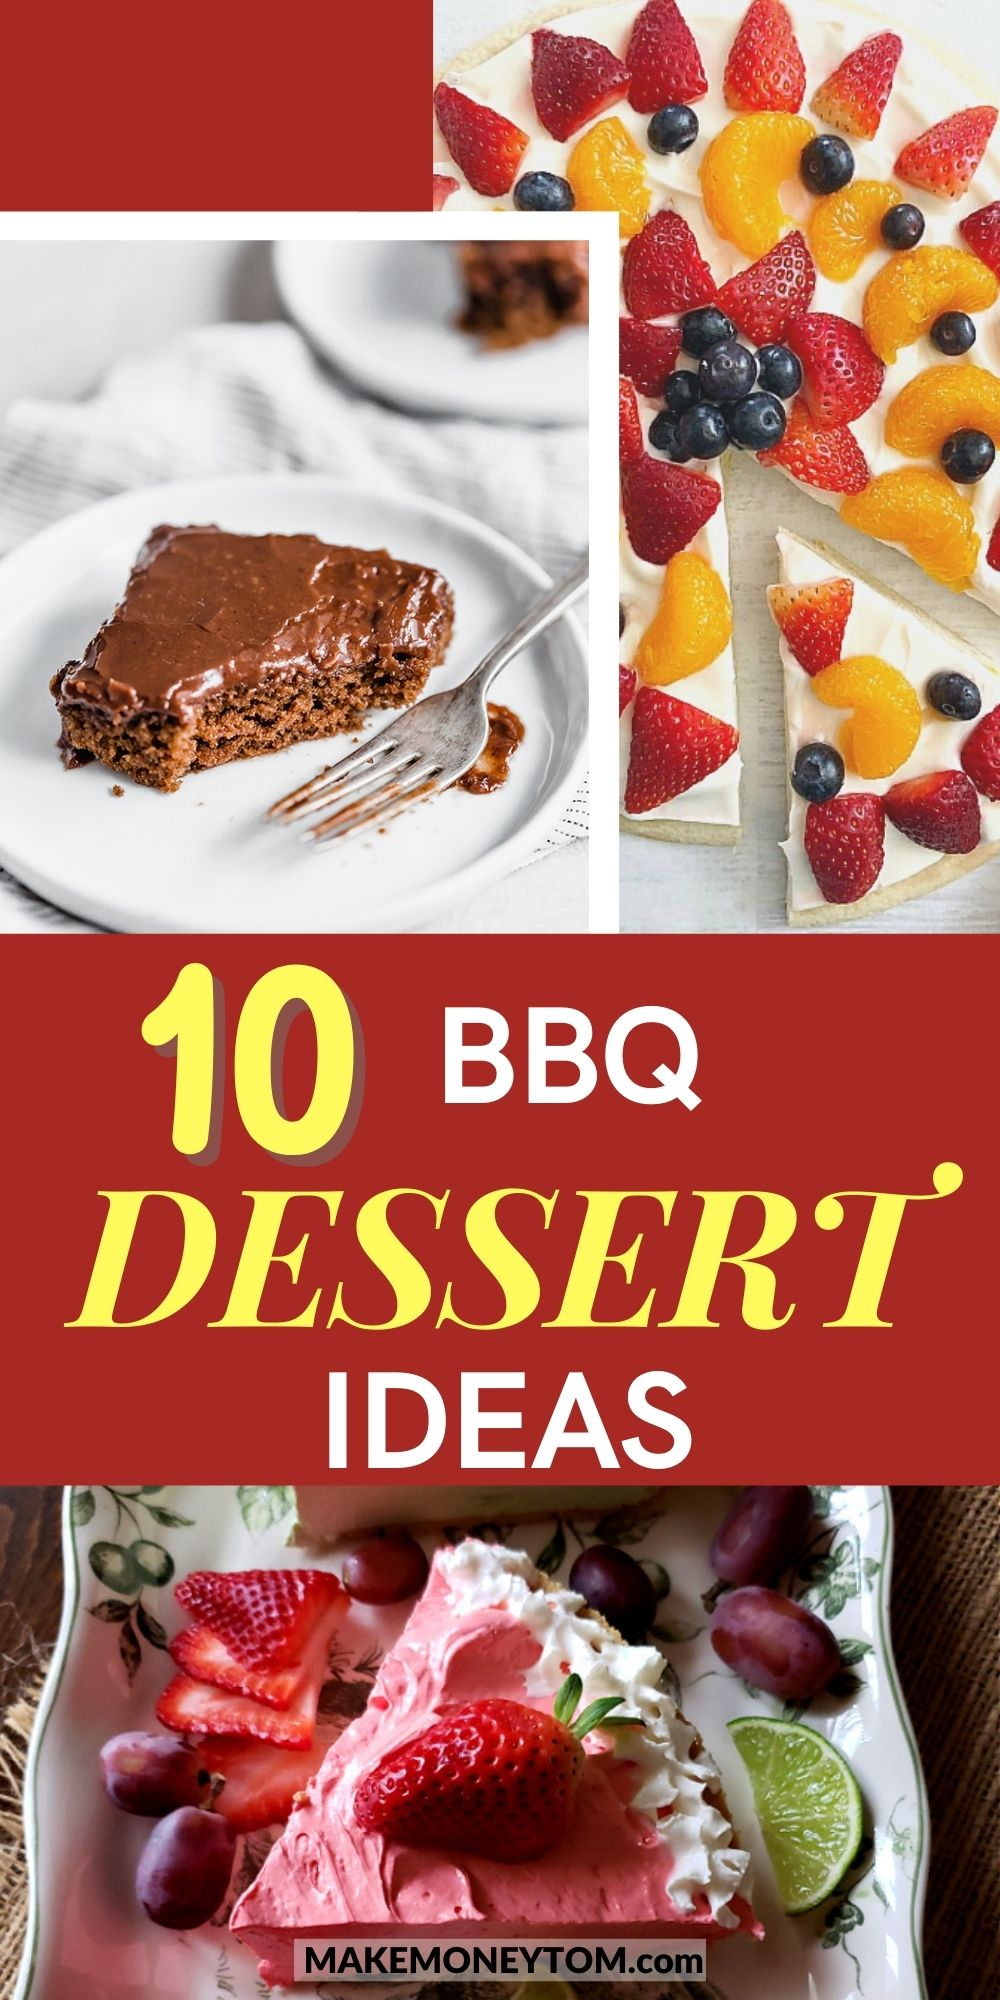 10 Party BBQ Dessert Ideas + Delicious Desserts To Bring To A BBQ